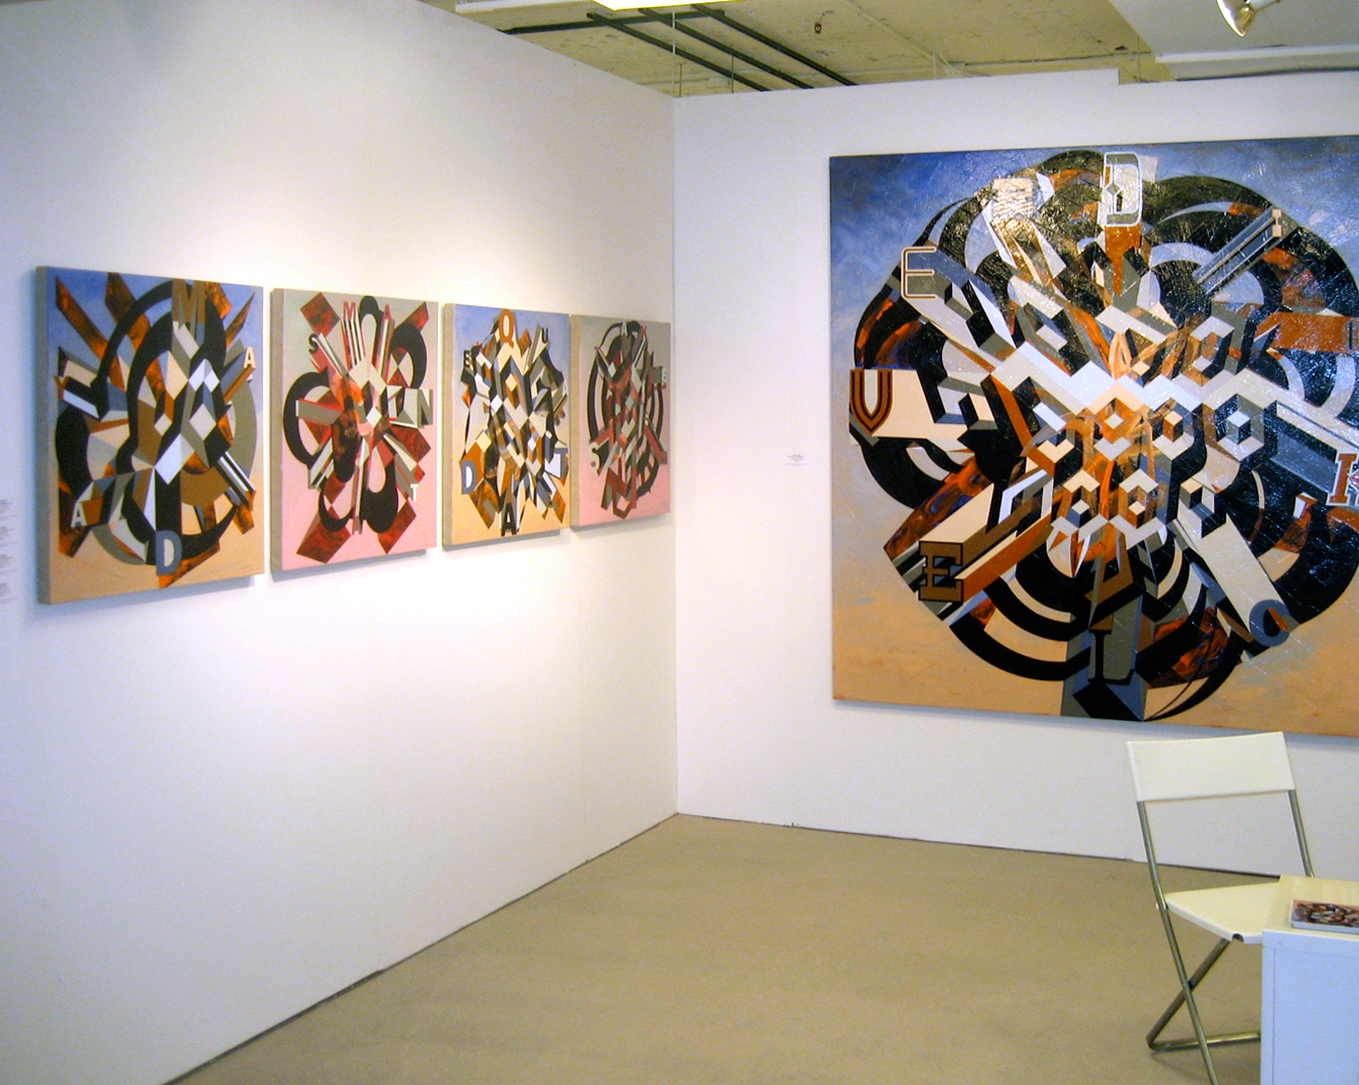 NEXT: The Invitational Exhibition of Emerging Art, Chicago, 2010